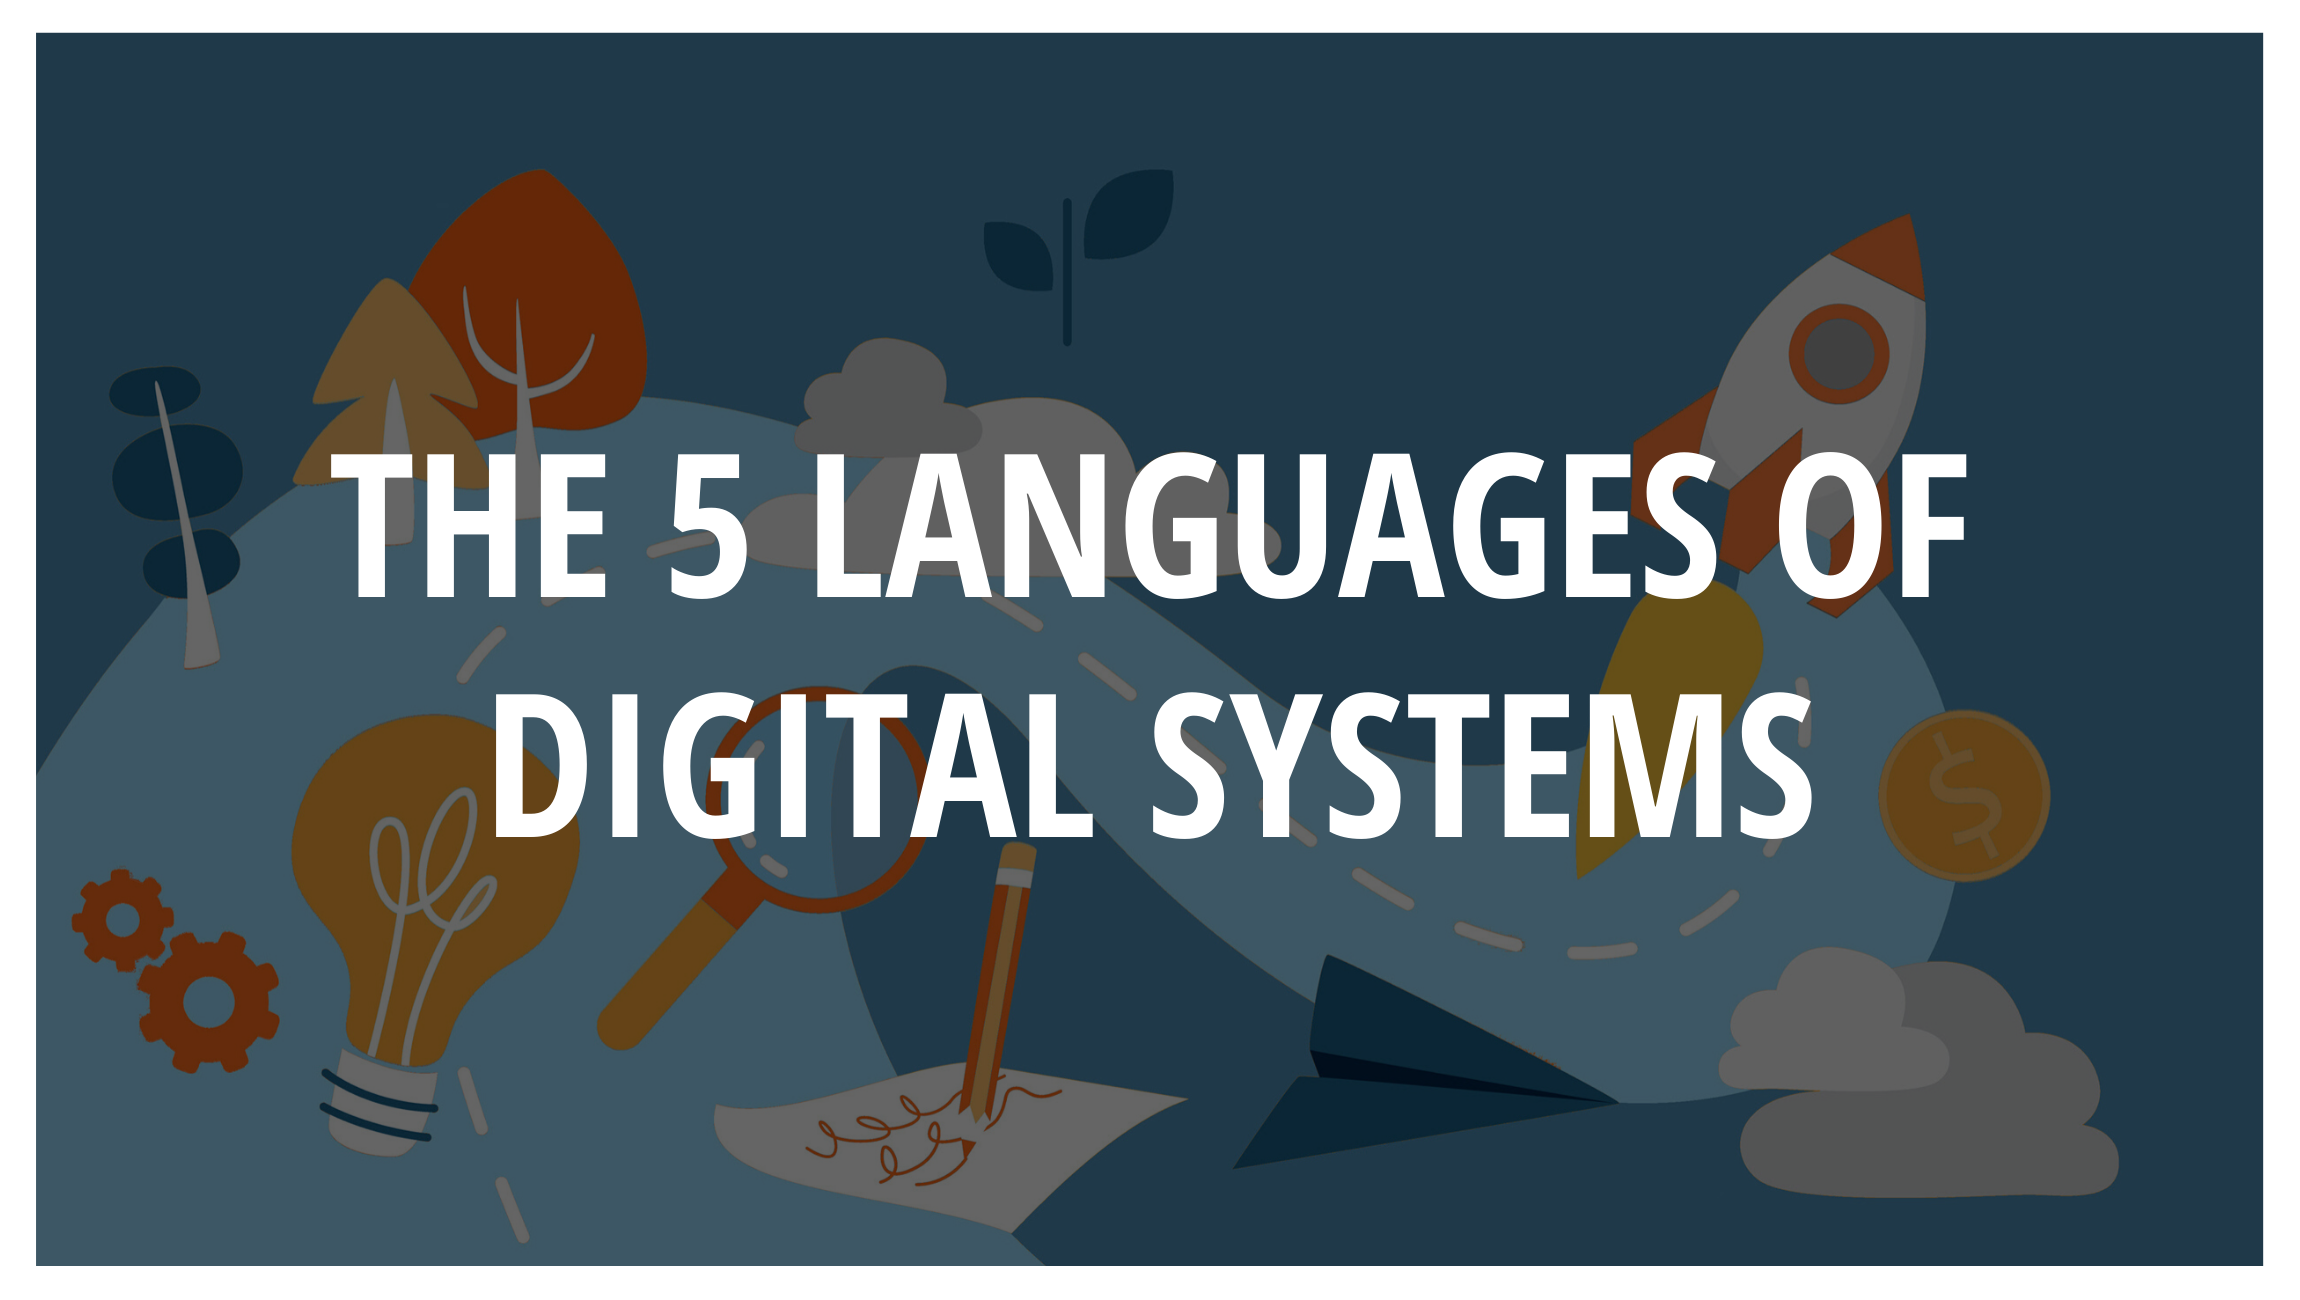 The 5 Languages of Digital Systems - thumbnail (1)